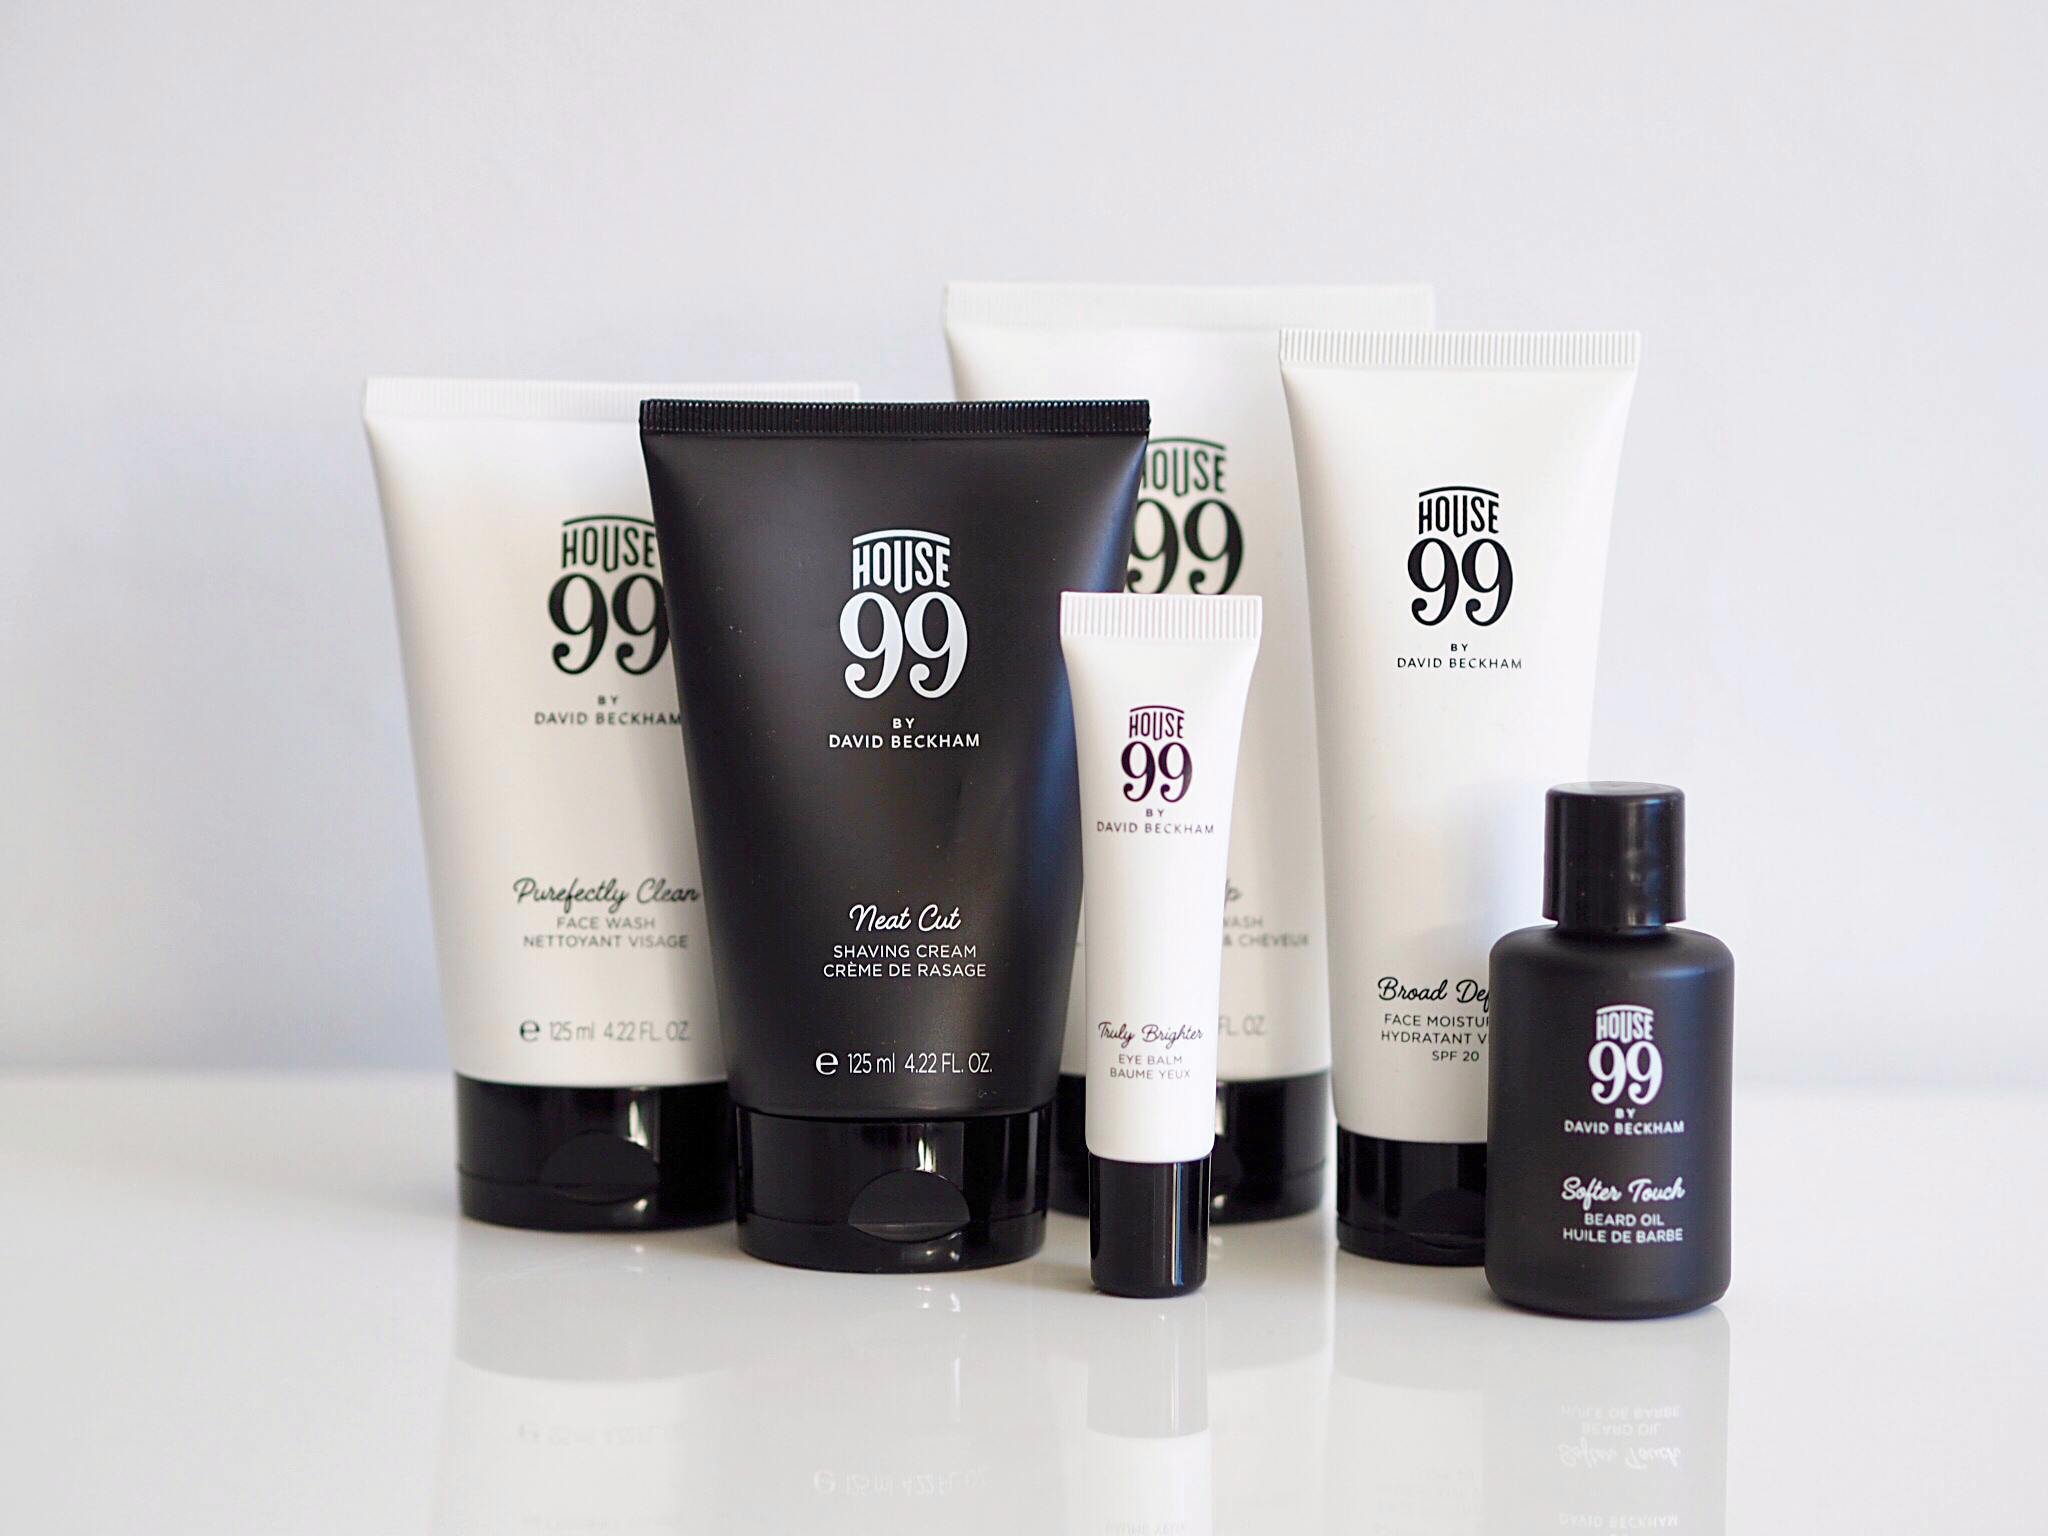 House 99 Skincare Grooming By David Beckham X Loreal